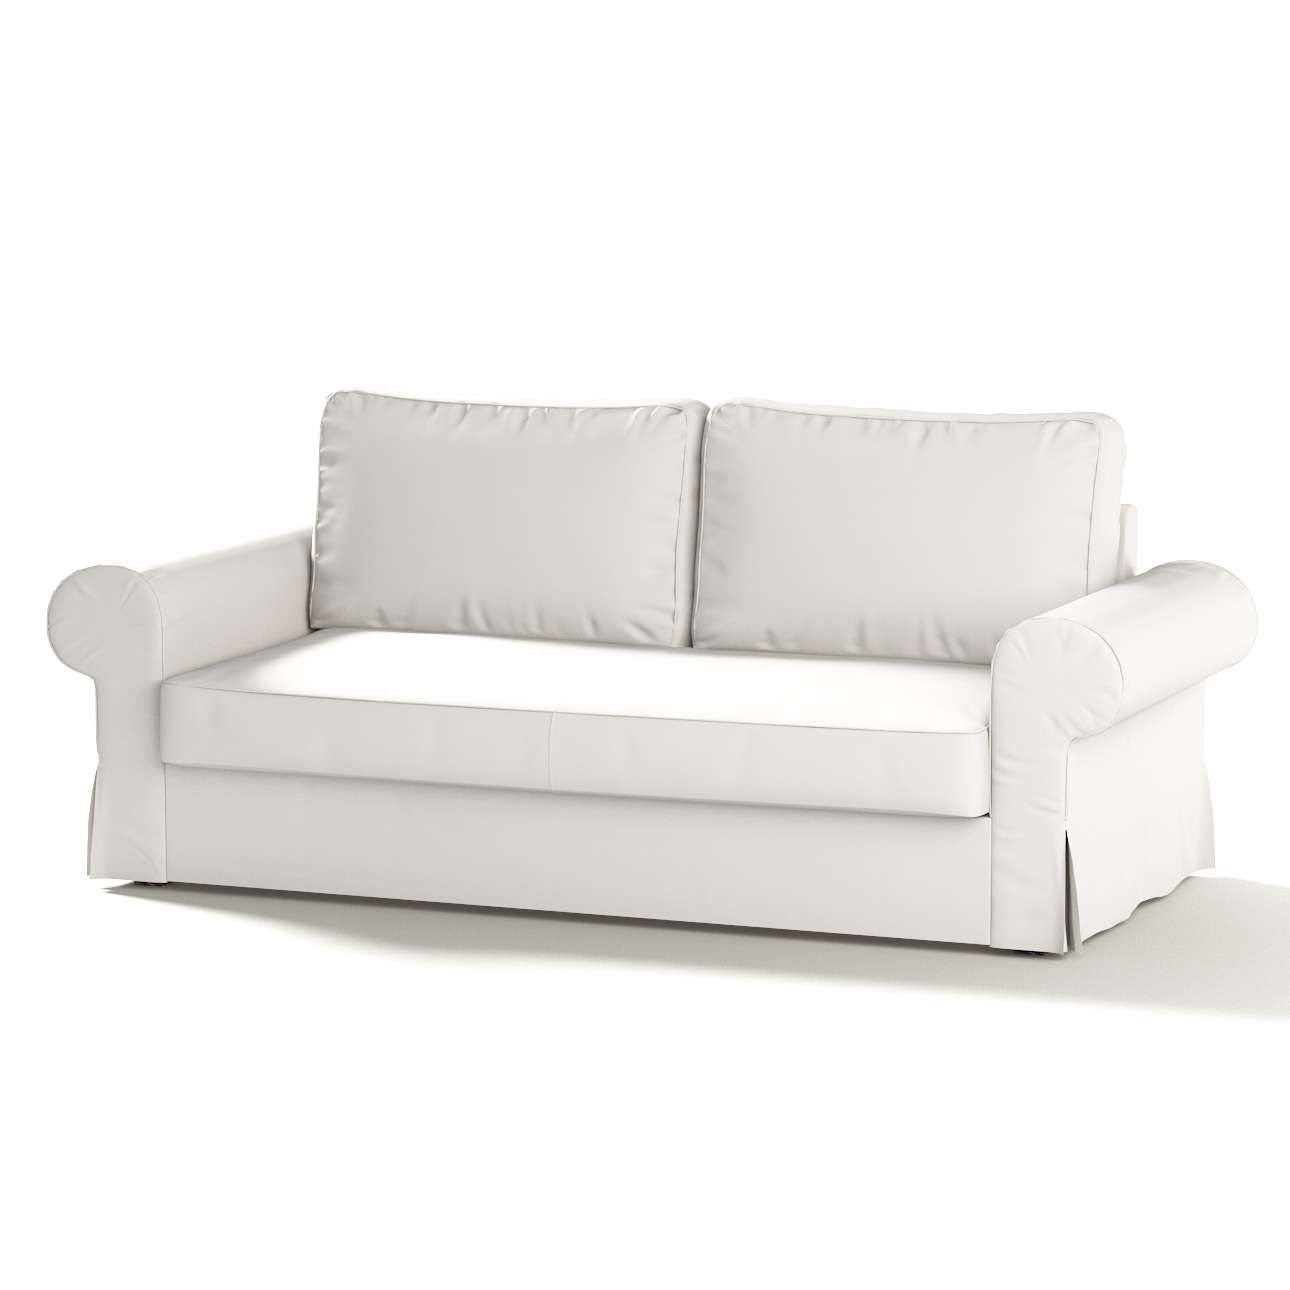 Backabro Ecksofa Backabro Cotton Panama Weiss Poäng Hockerbezug